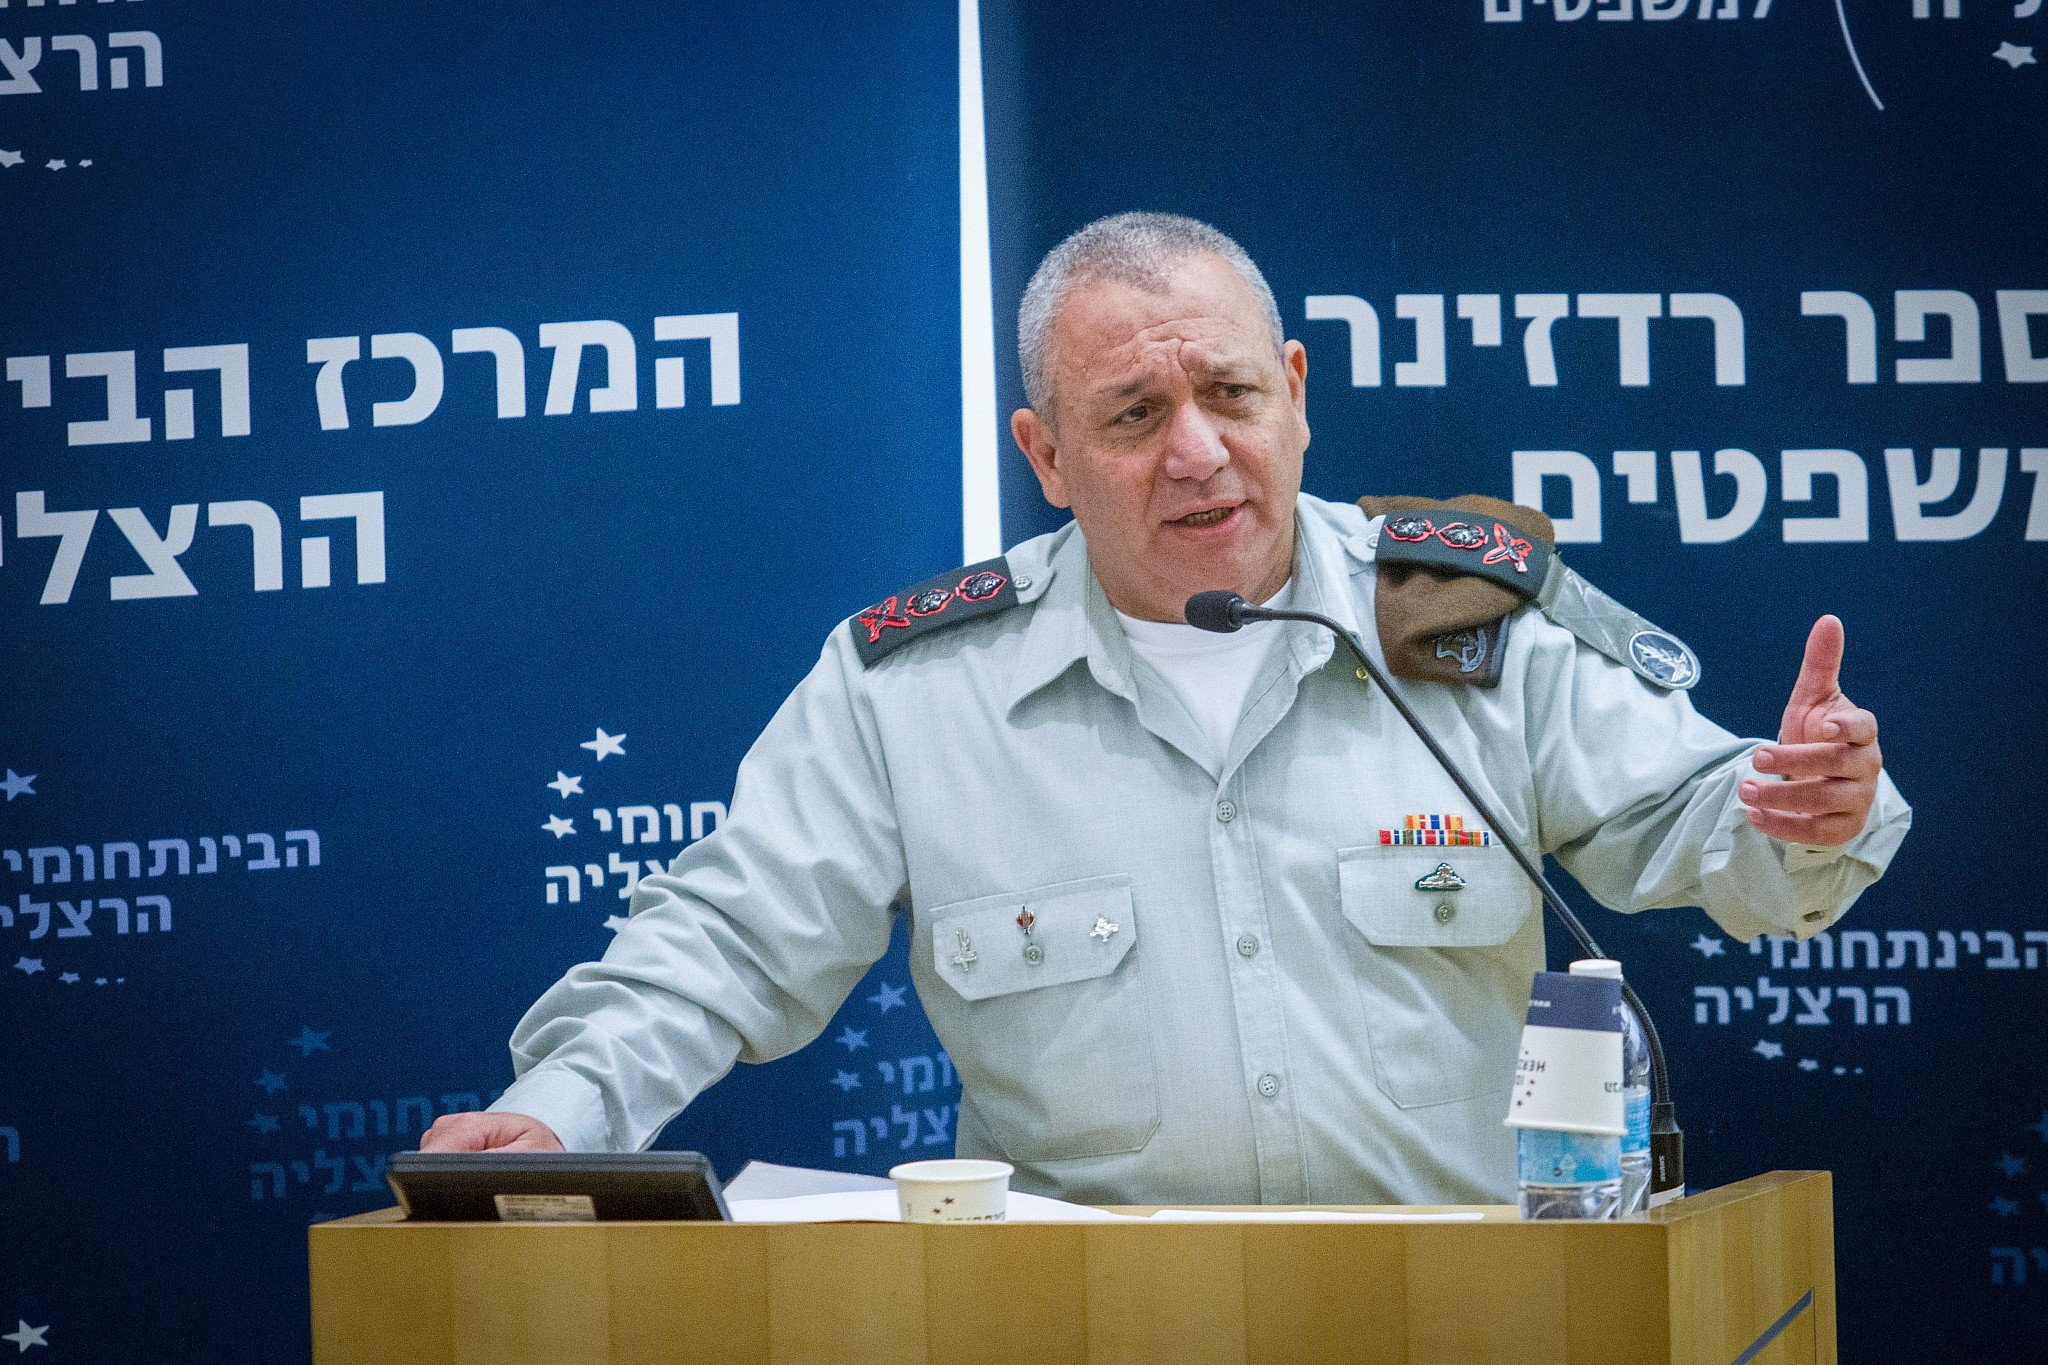 IDF Chief of Staff Gadi Eisenkott speaks at a conference at the Interdisciplinary Center in Herzliya